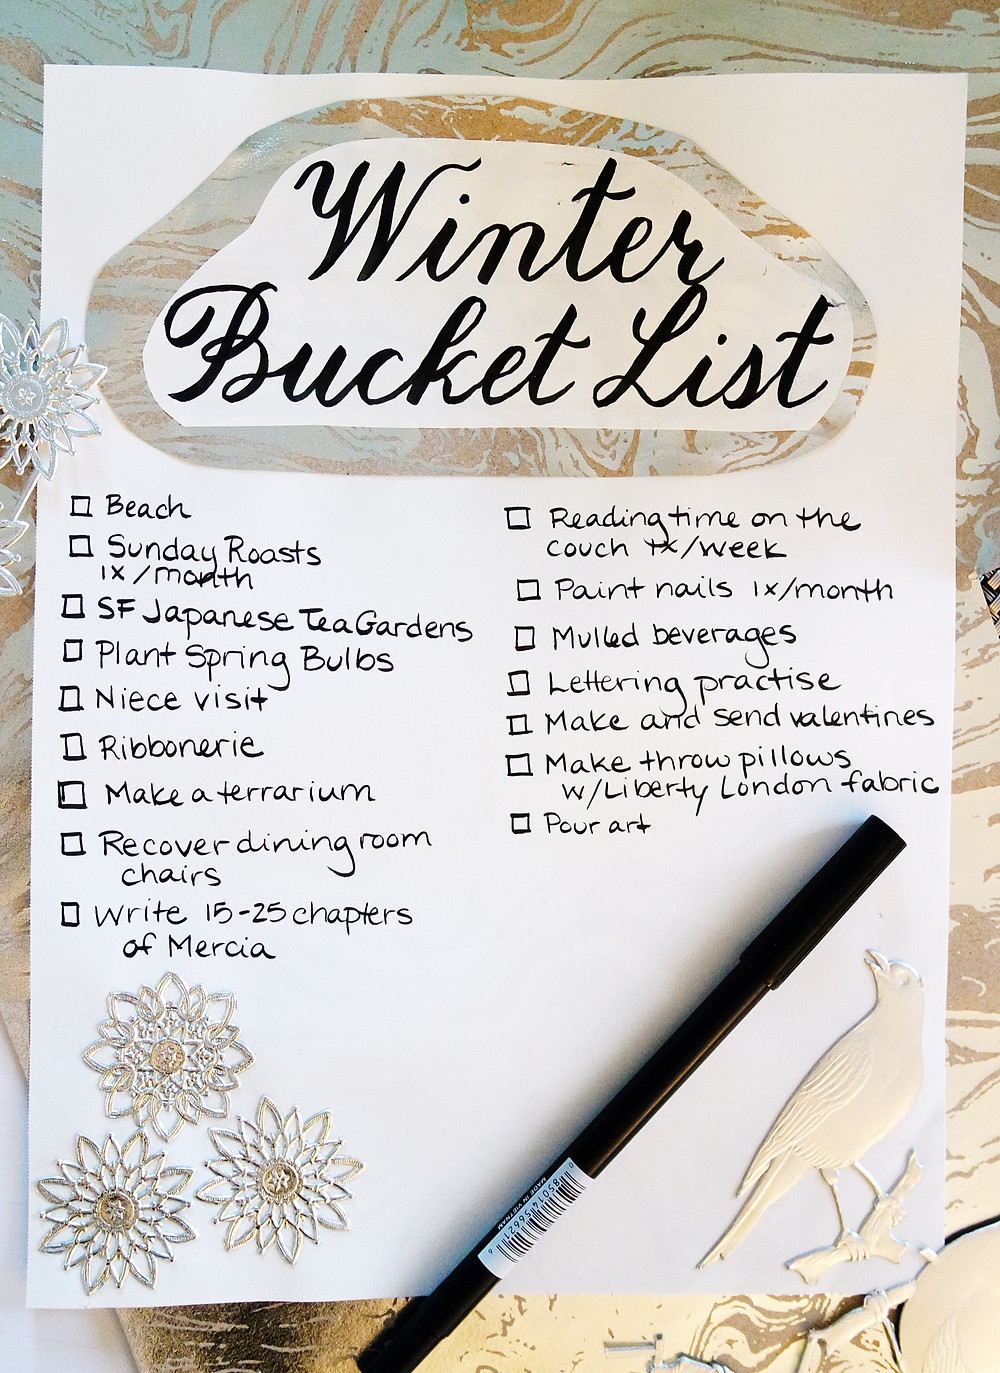 Winter Bucket List - title in black fancy lettering pasted over silver and brown paper and in the bottom three silver star on the left and on the right a silver bird.